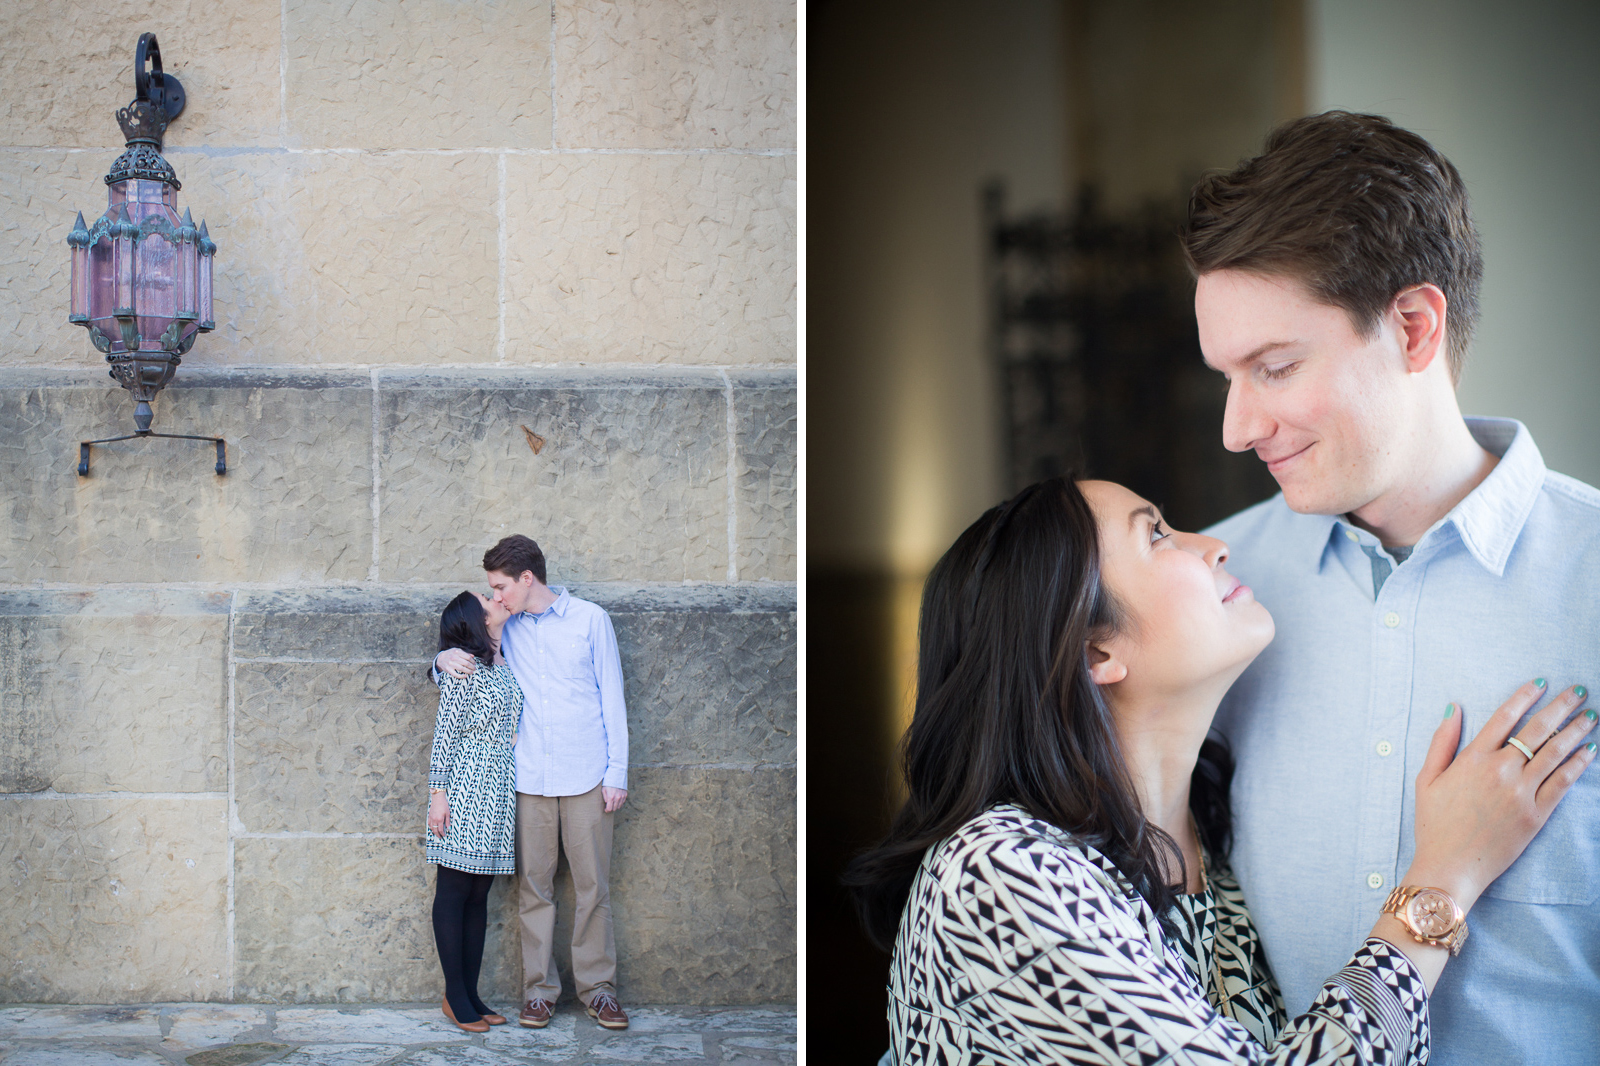 Engagement below the arch of the Santa Barbara courthouse.